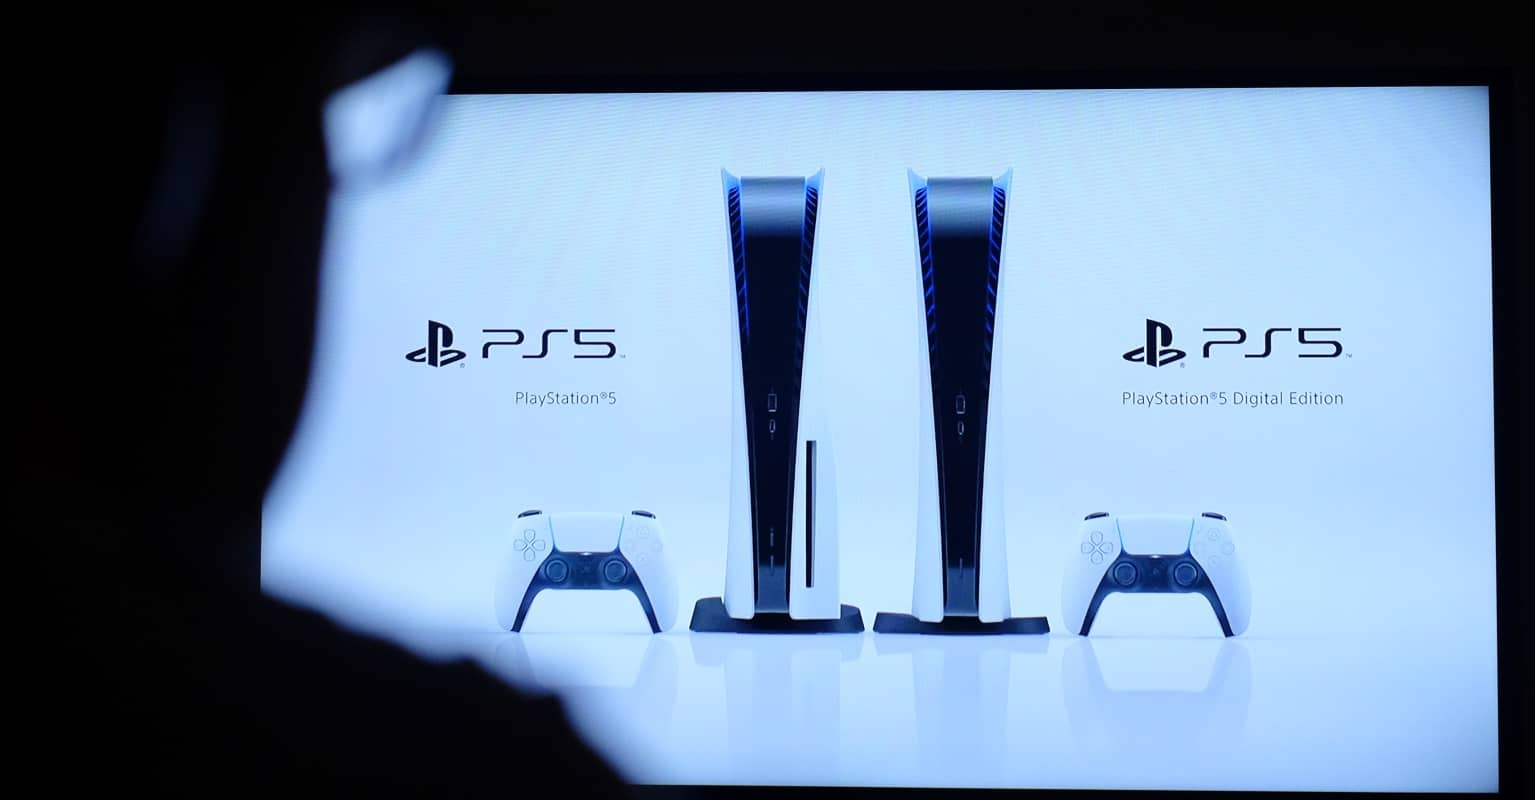 PS5 unboxing videos are appearing online and it looks massive